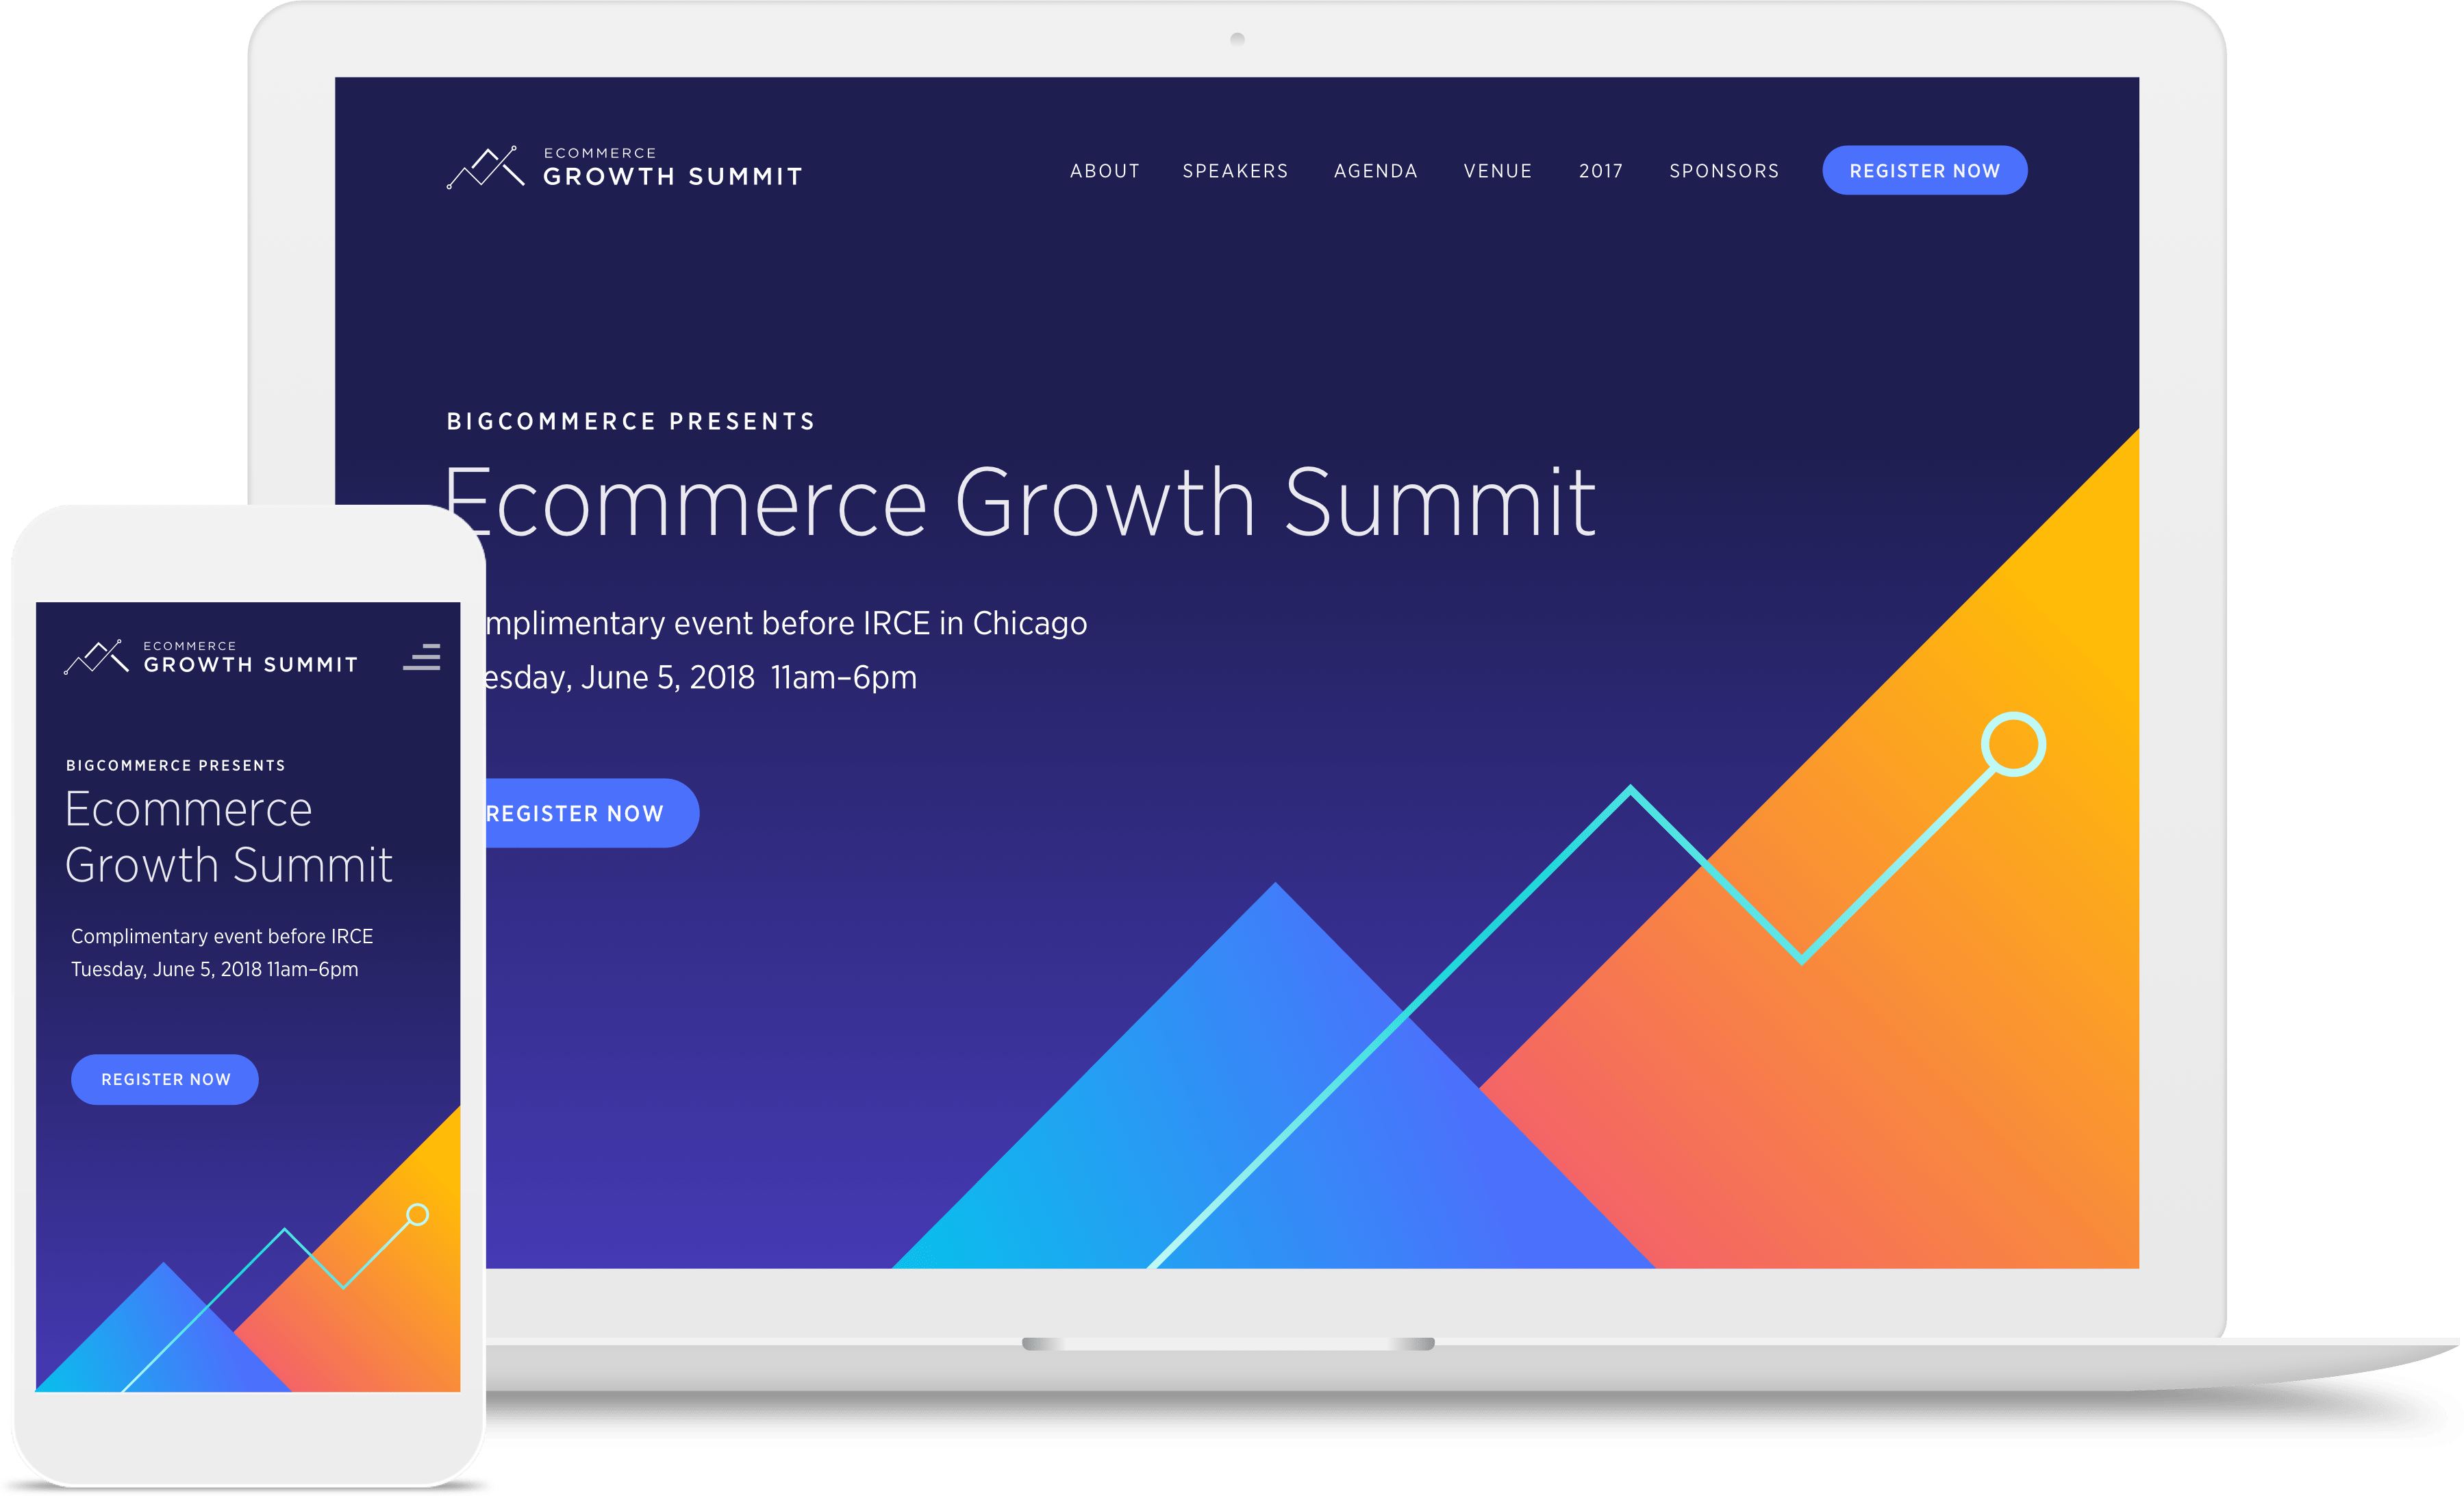 ecommerce growth summit event landing page